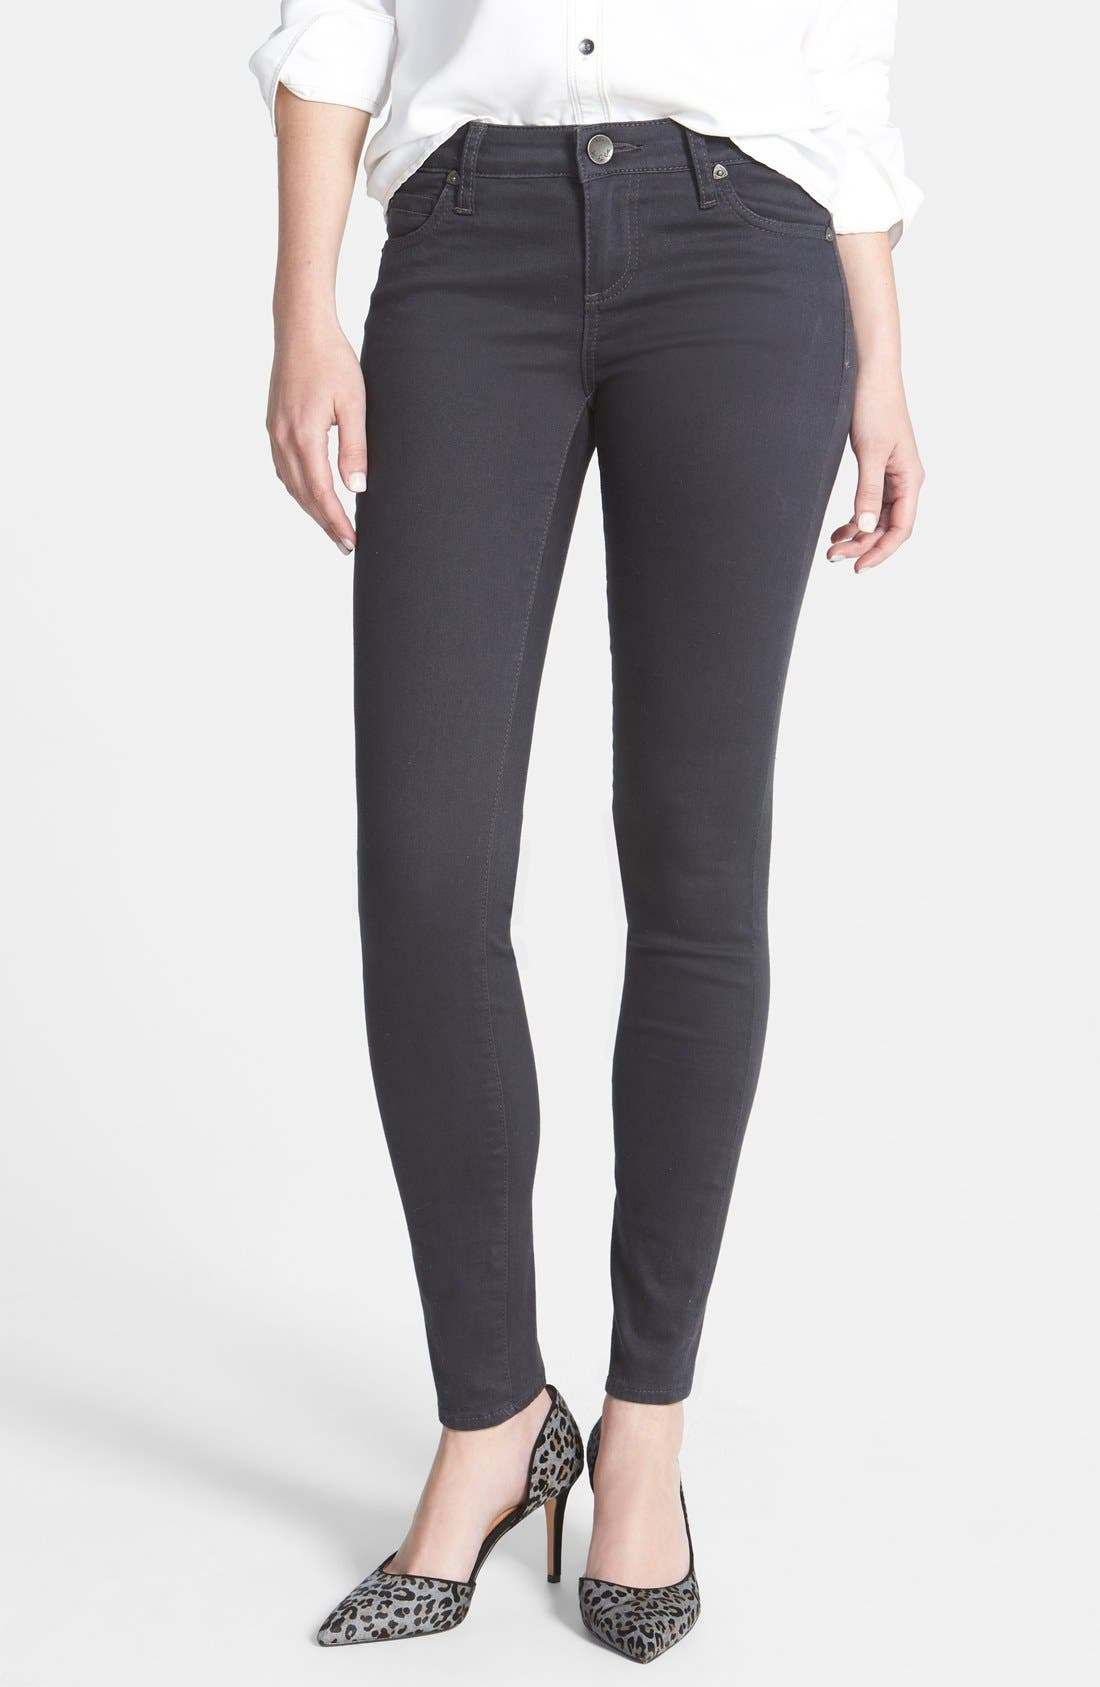 Main Image - KUT from the Kloth 'Mia' Stretch Skinny Jeans (Graceful)